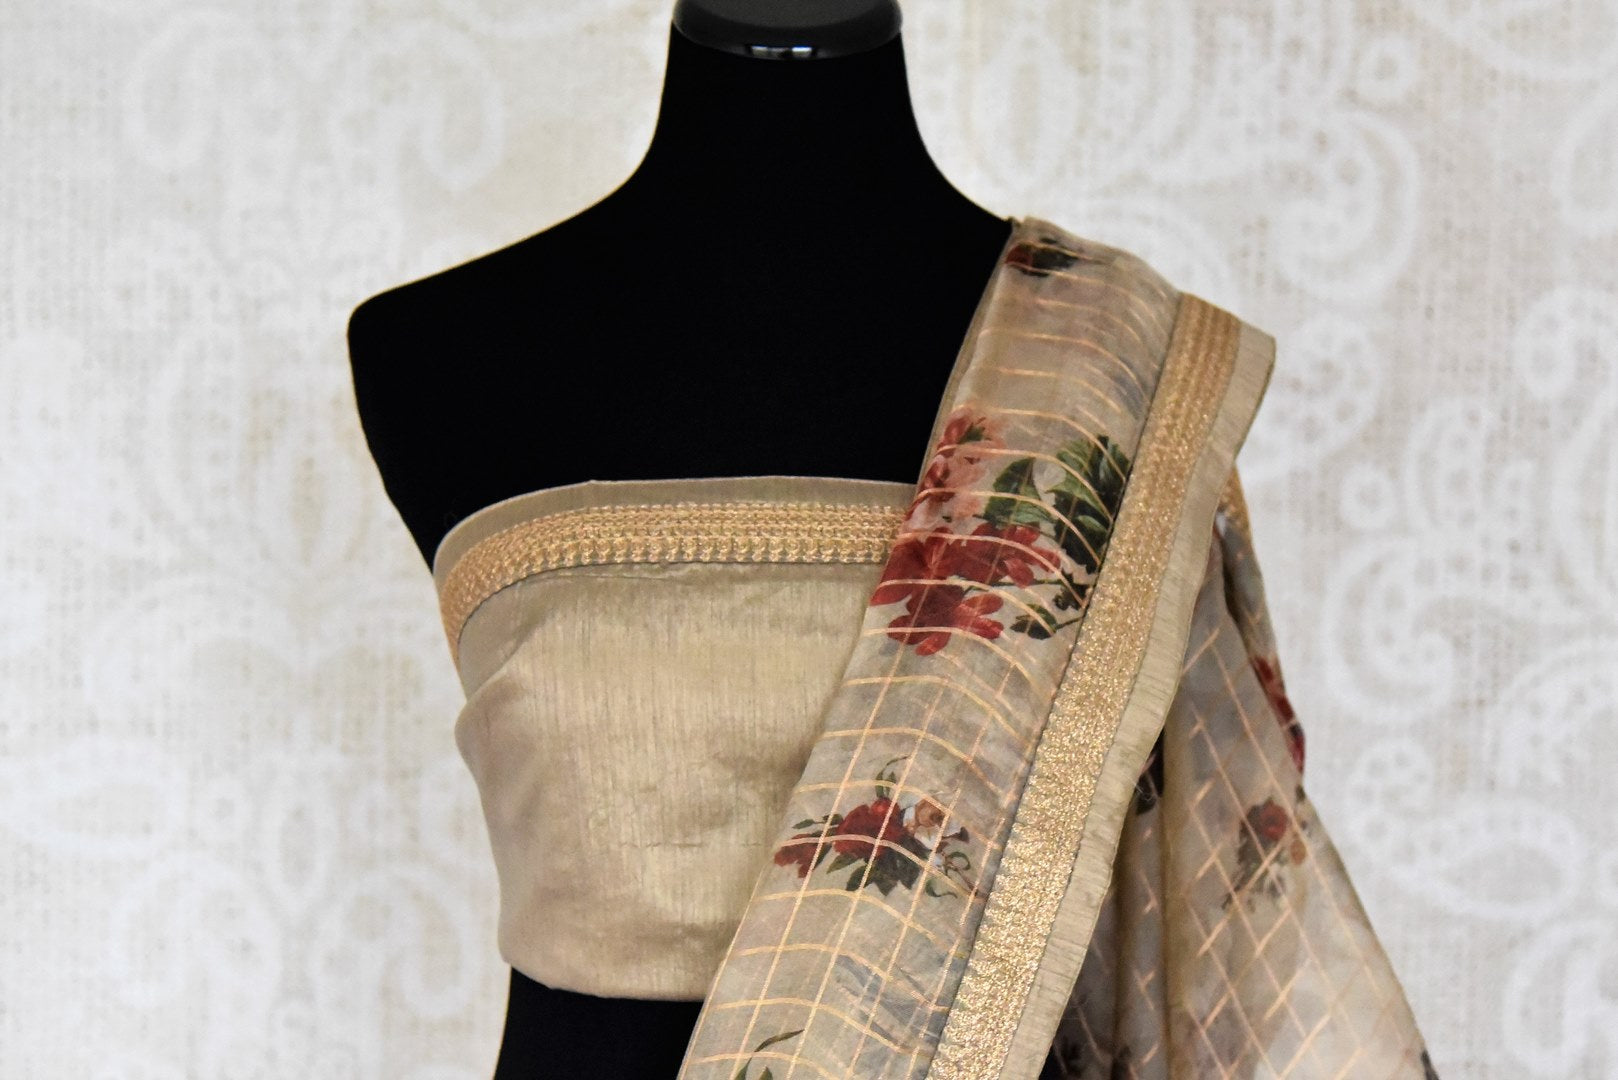 Buy beige floral print zari check kora organza saree online in USA from Pure Elegance. Let your ethnic style be one of a kind with an exquisite variety of Indian designer sarees, pure silk sarees, Bollywood sarees from our exclusive fashion store in USA.-blouse pallu